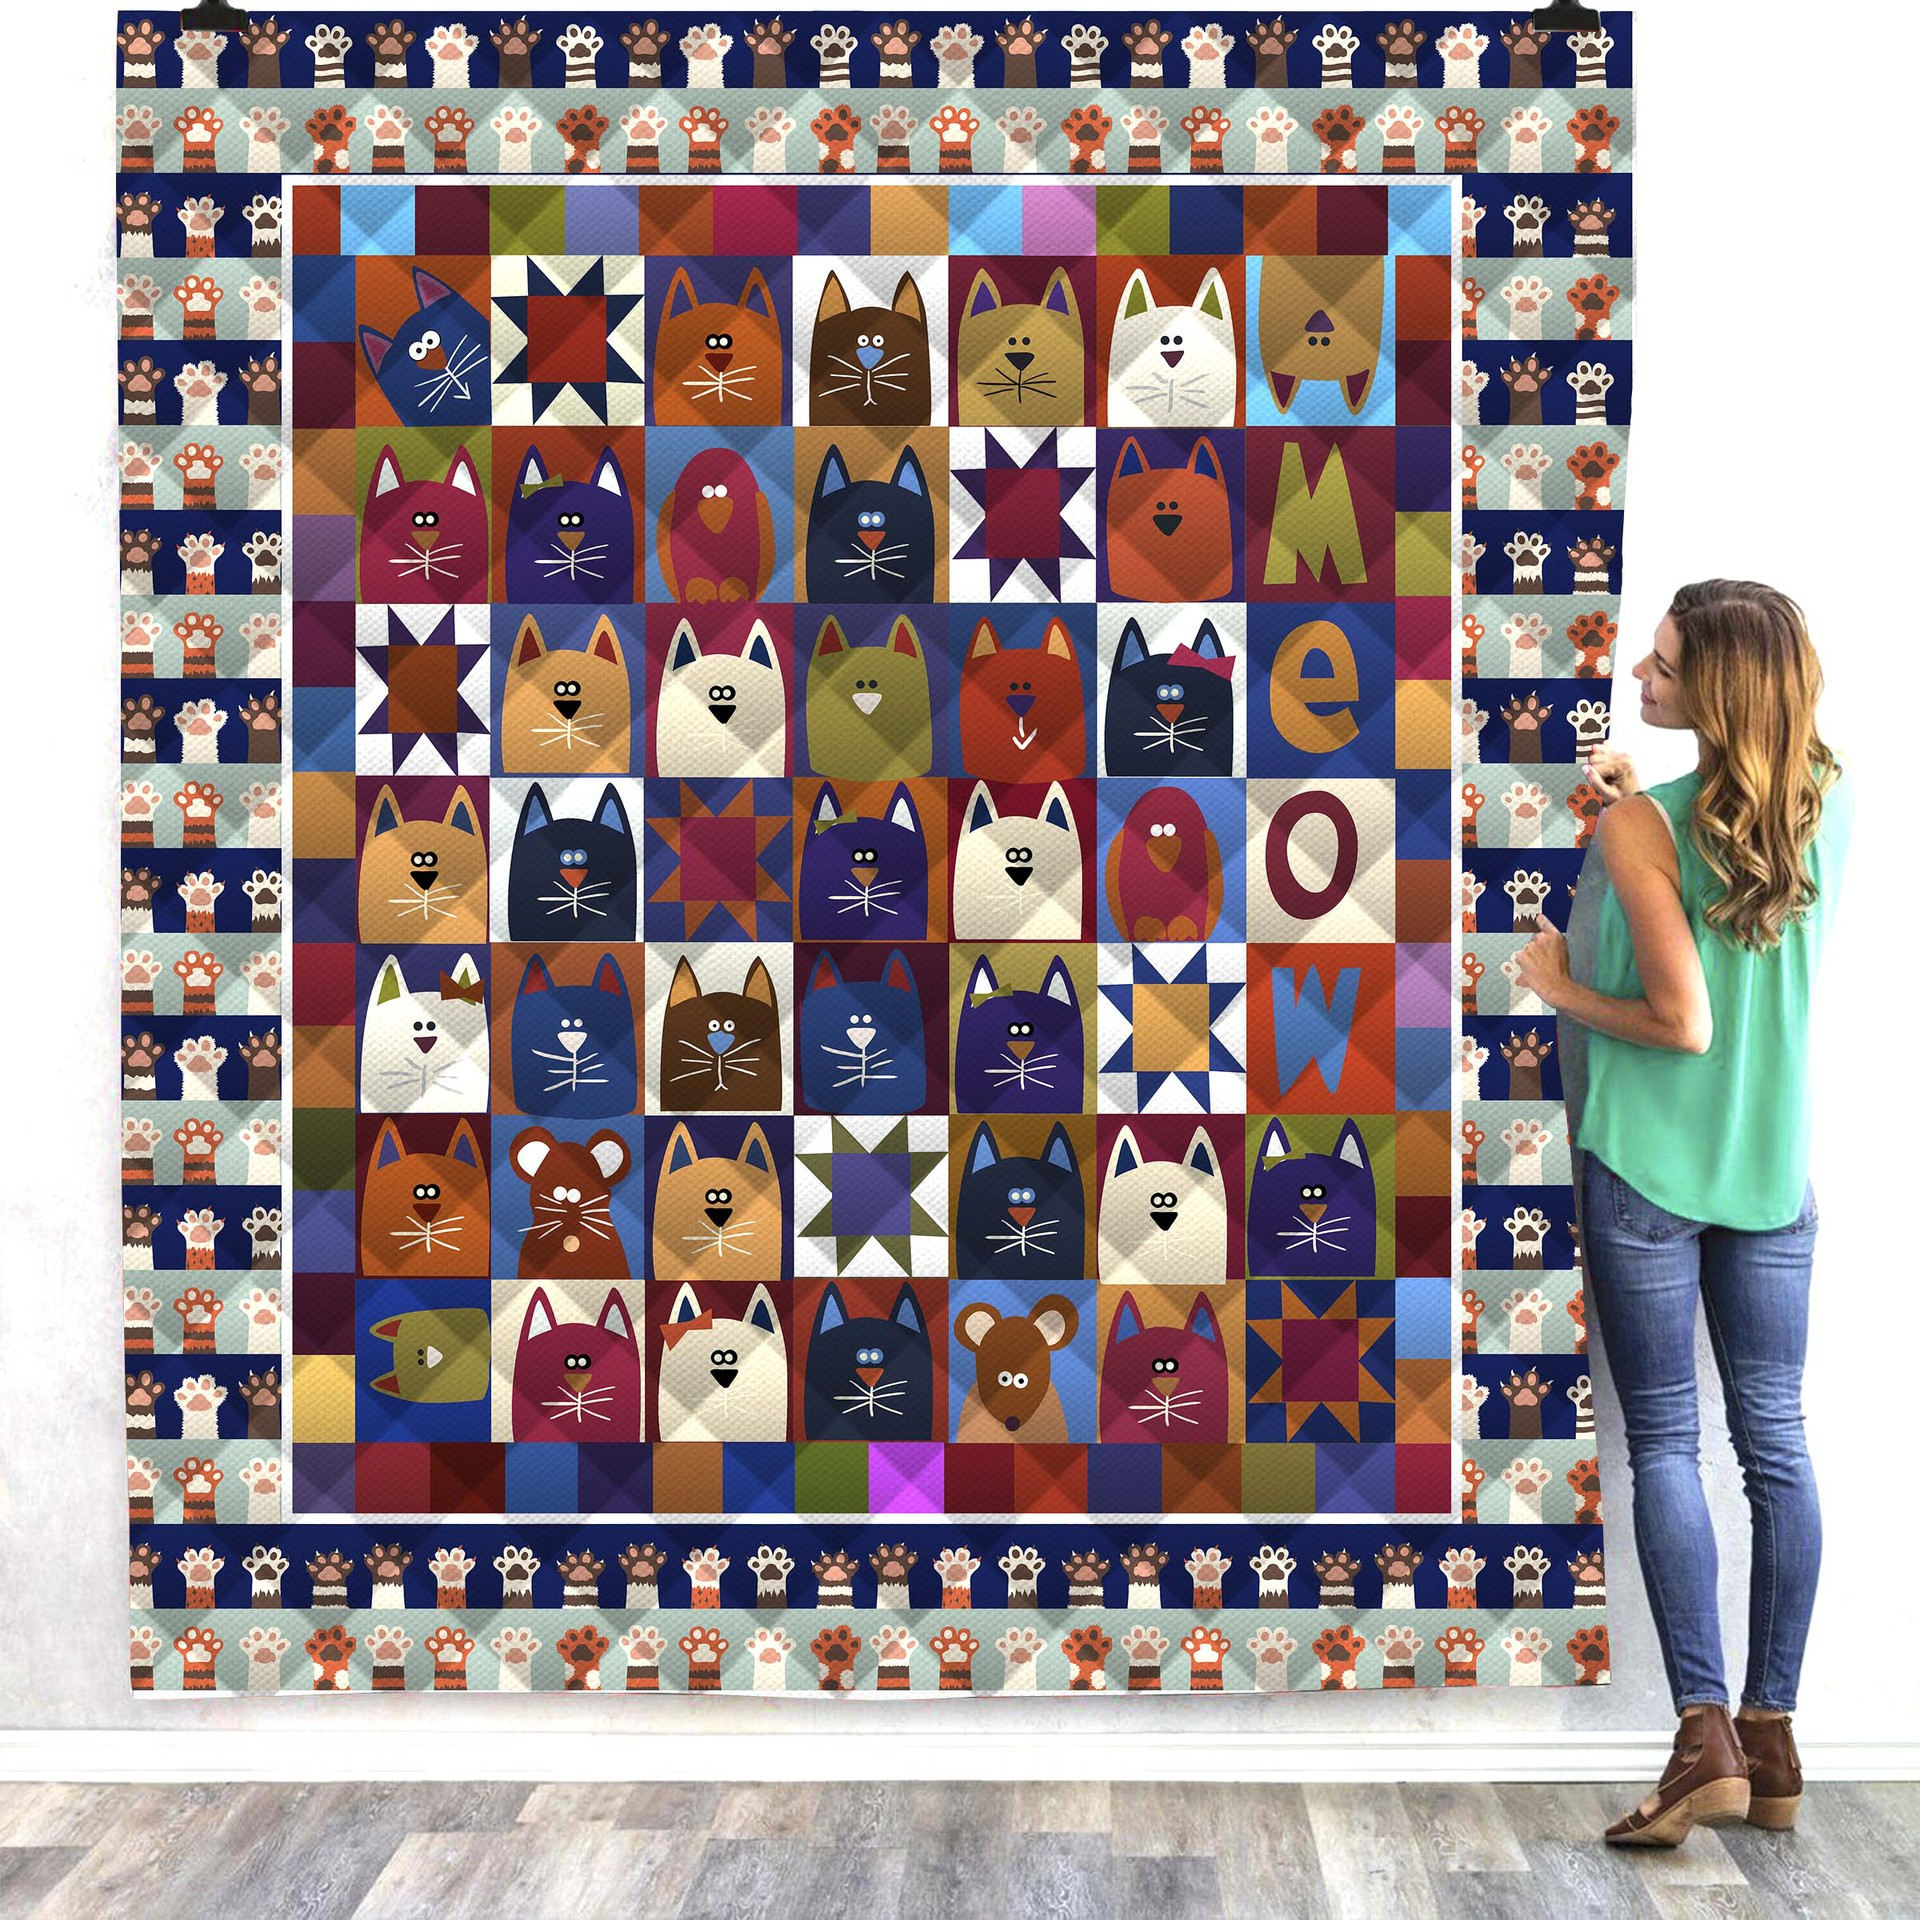 Halloween Cat Cute 3d Printed Quilt Blanket Kids Adults Bedding Throw Soft Warm Thin Office Blanket With Cotton Quilt Style-2 Rich And Magnificent